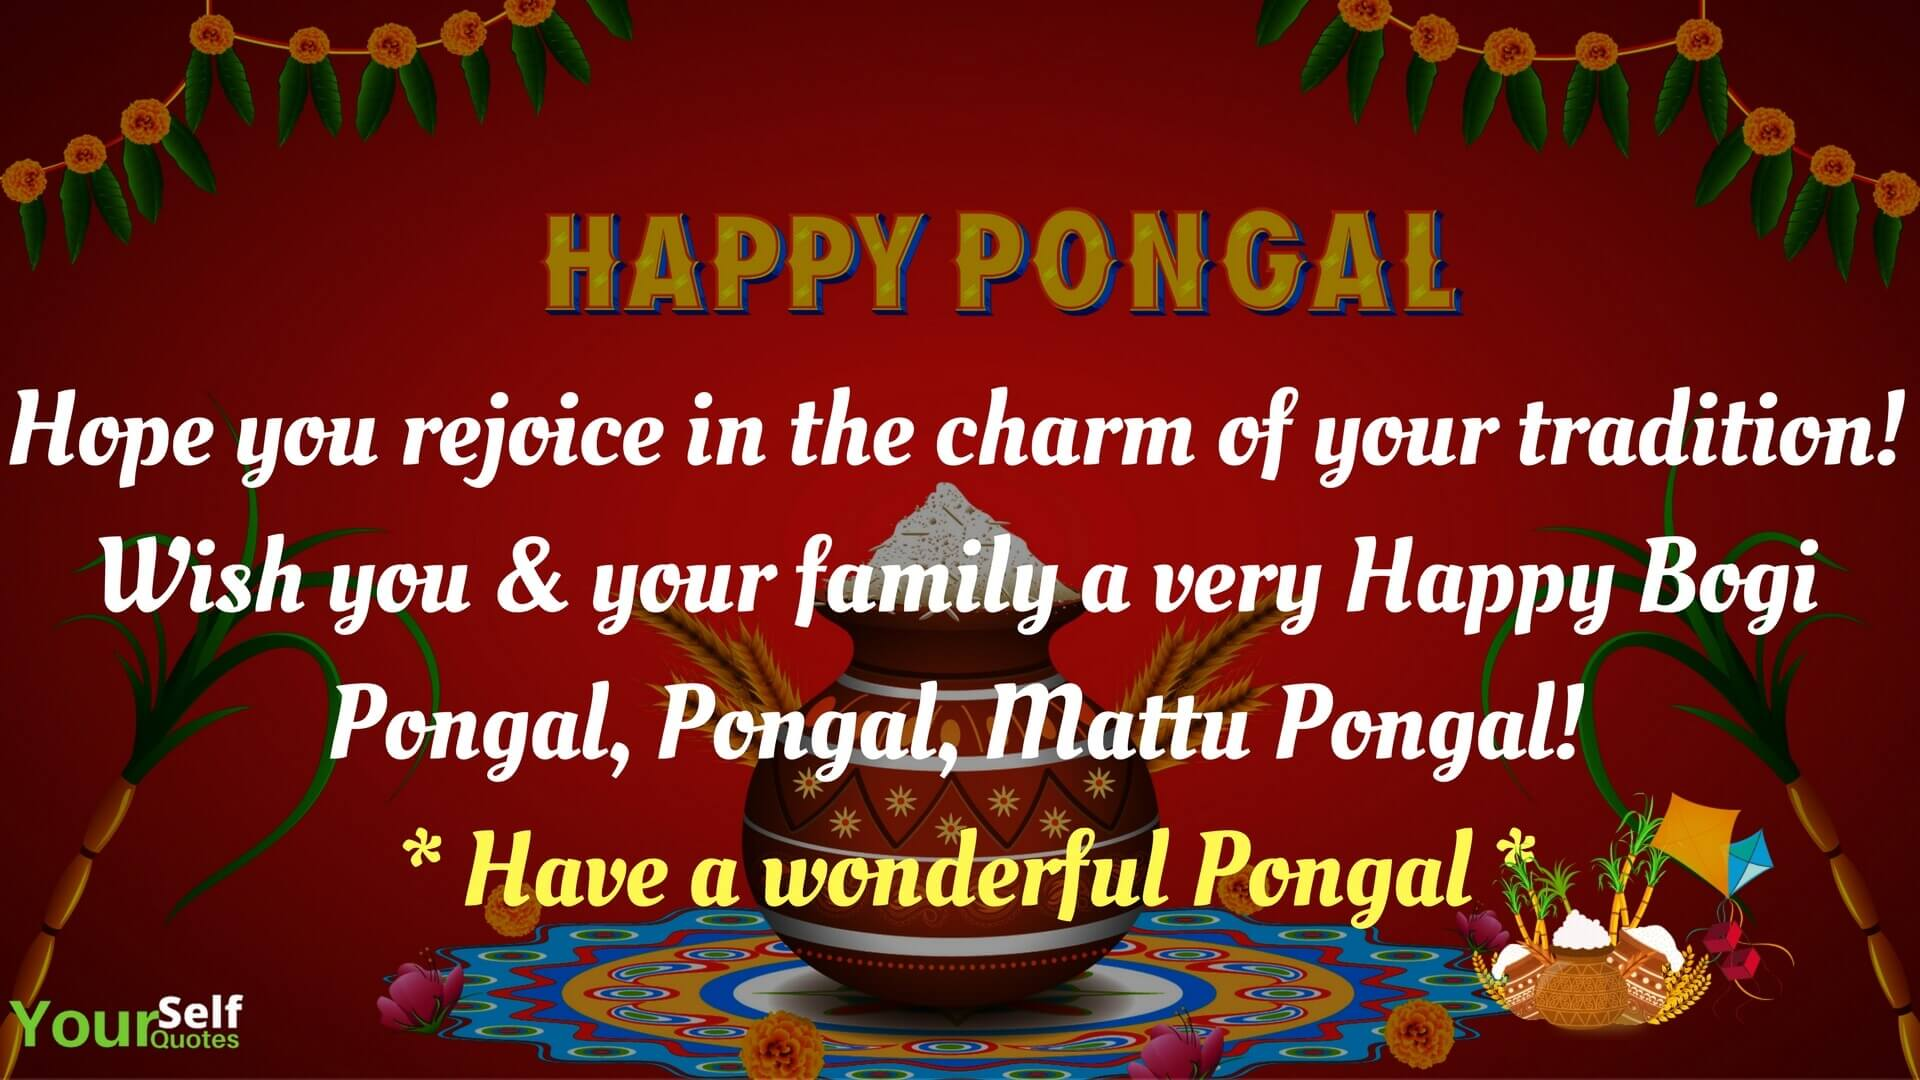 Happy pongal festival wishes 2018 messages greetings images mattu happy pongal festival wishes kristyandbryce Images